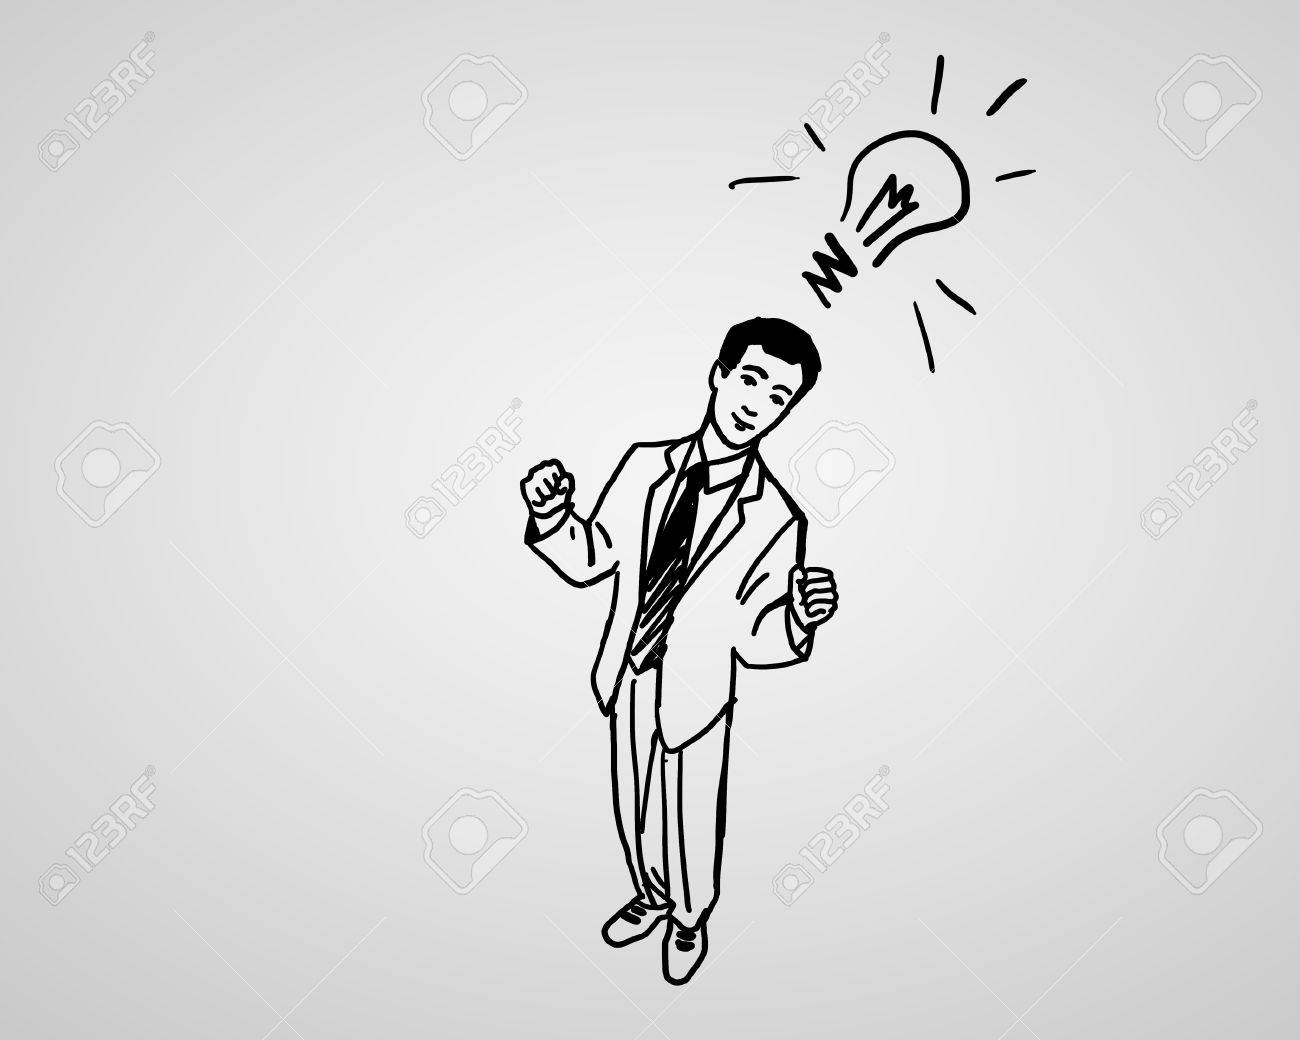 Drawing about creativity and success in business Stock Photo - 14133823